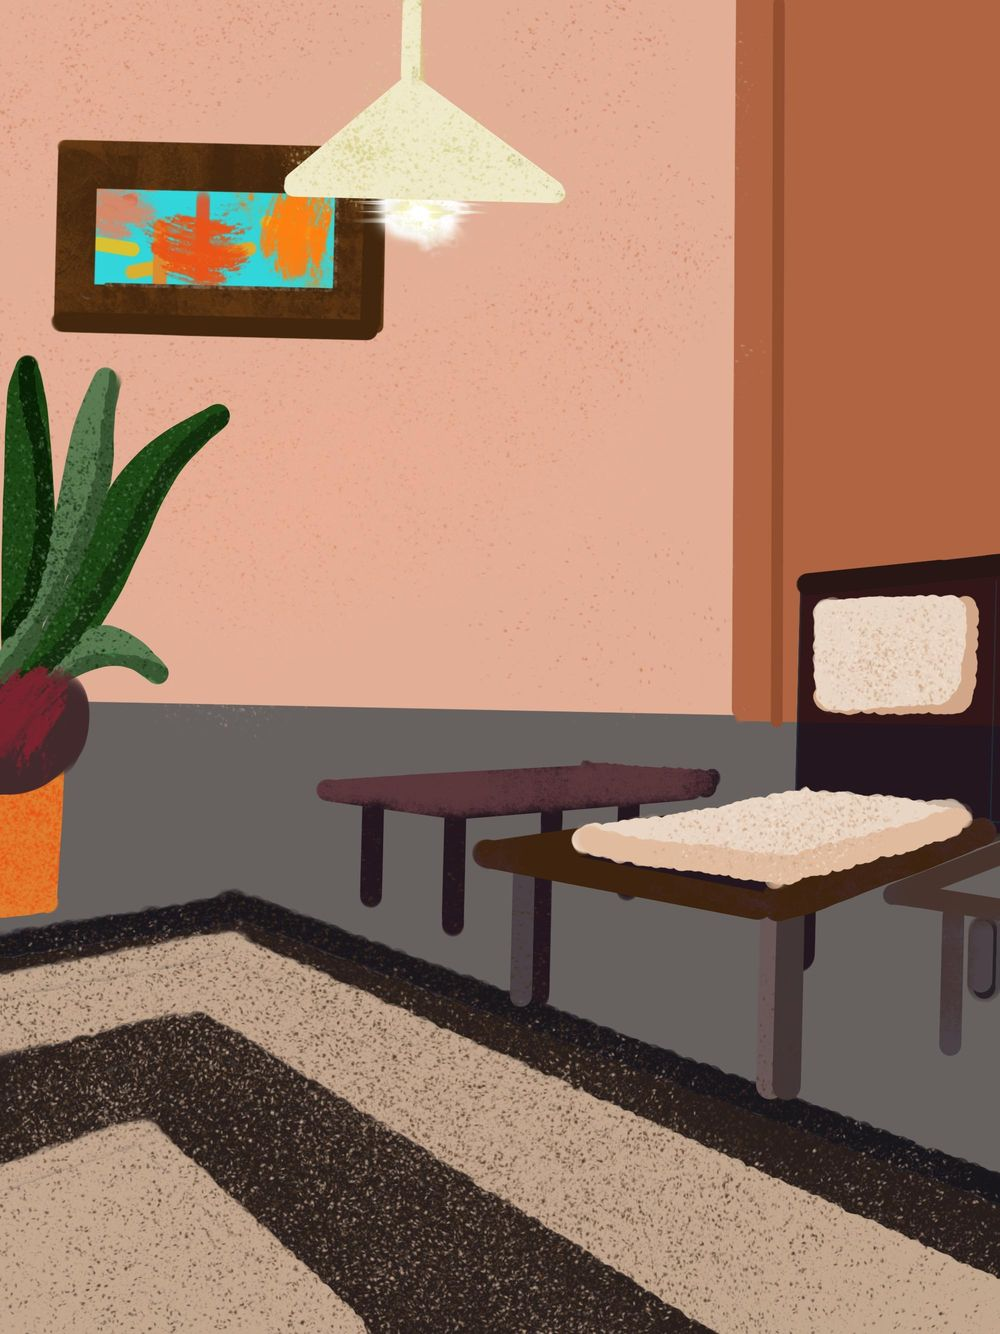 Practice Room - image 1 - student project